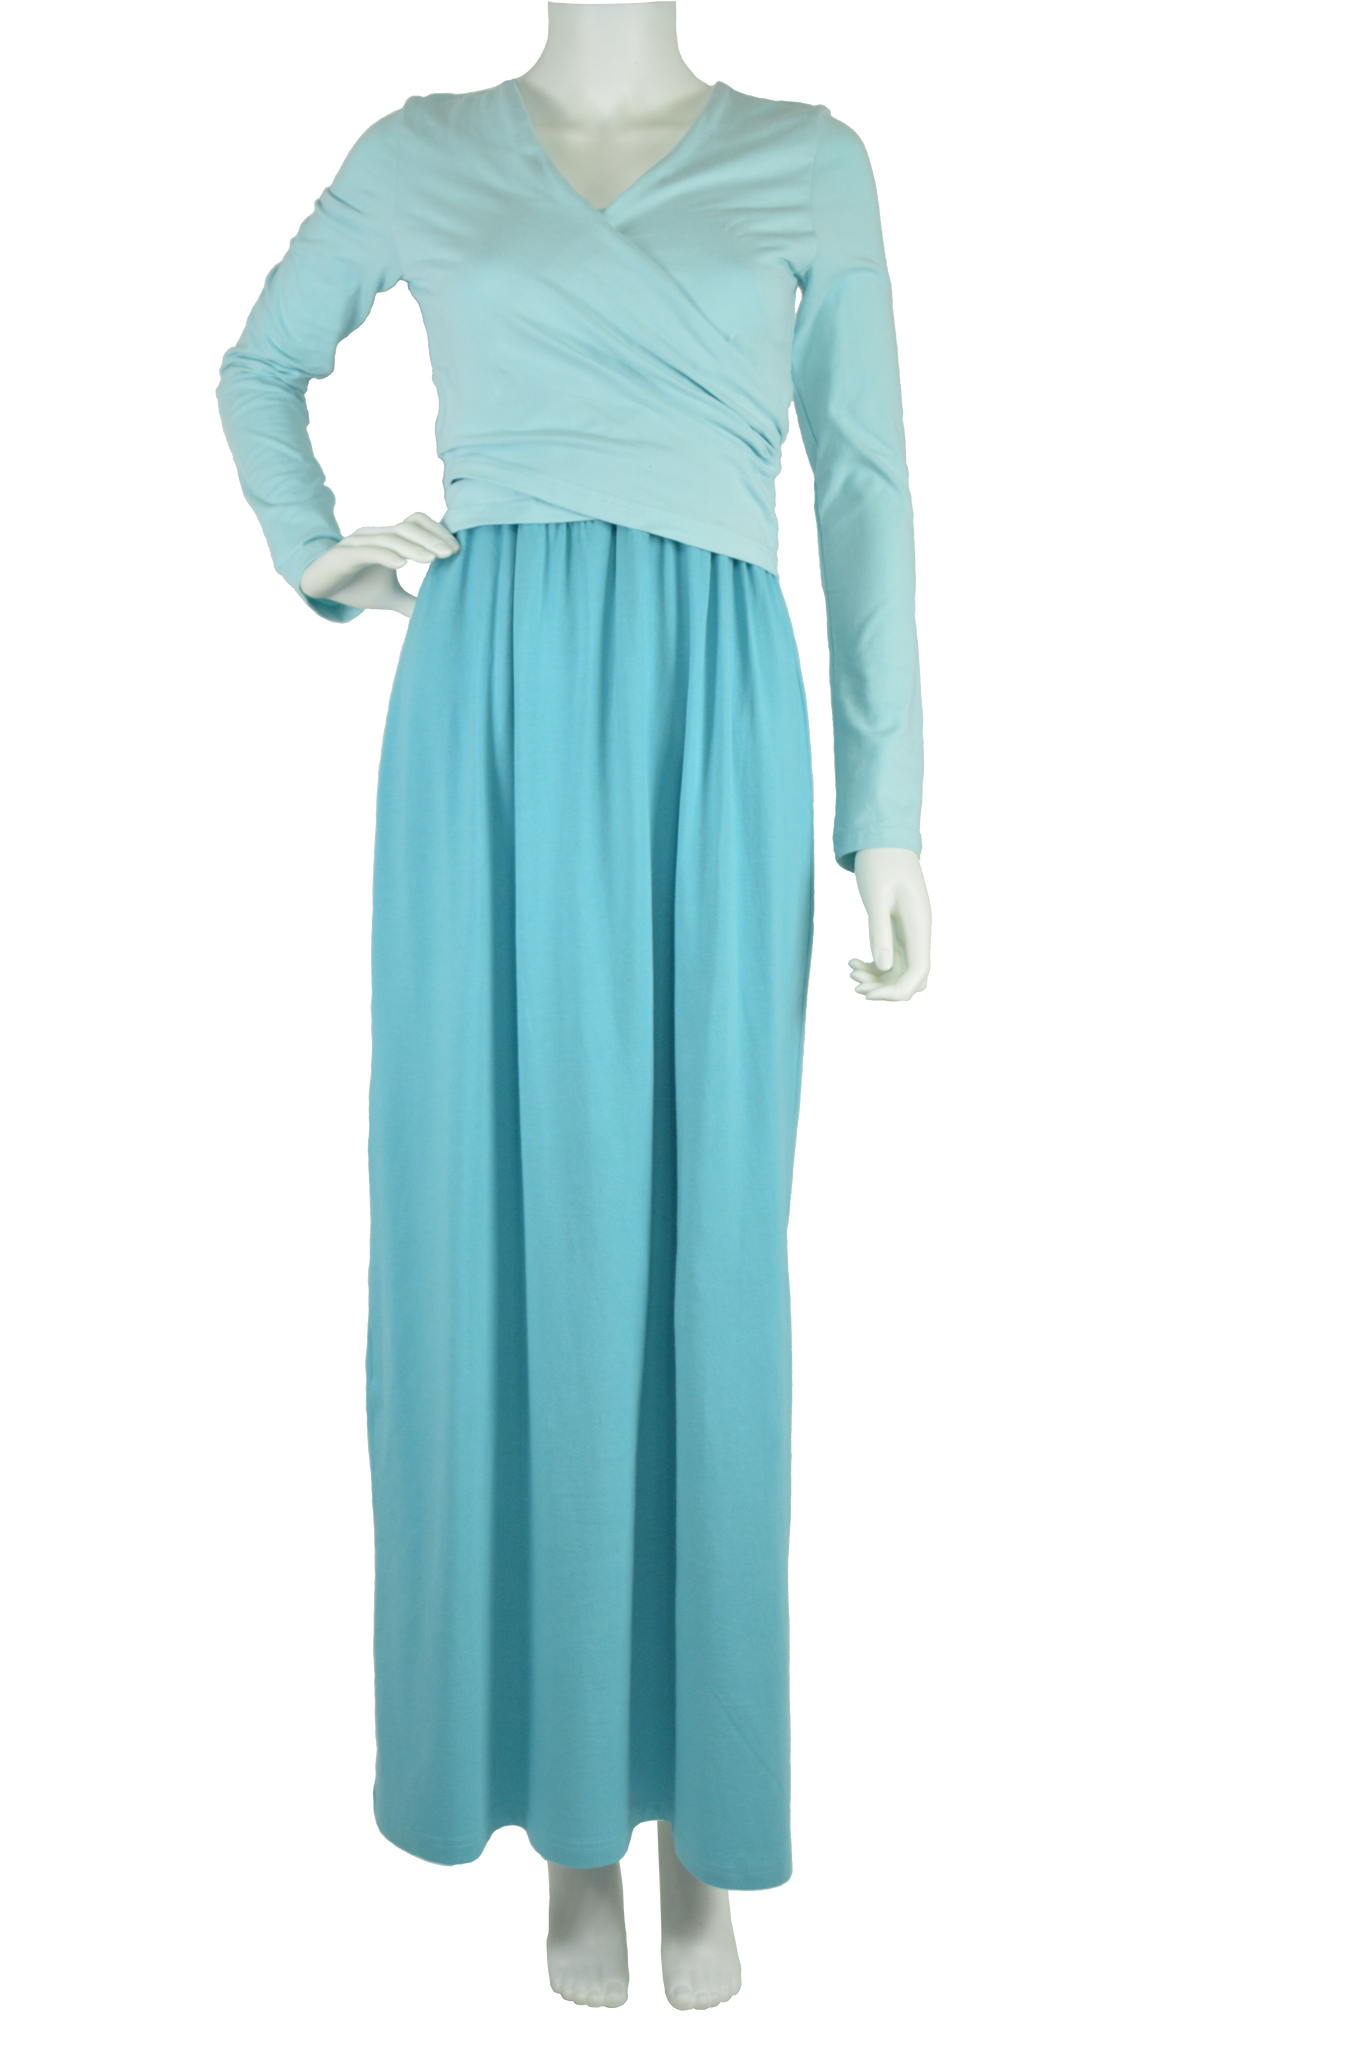 aqua maxi dress, turquoise maxi dress, full length dress, maxi dress, cotton maxi dress, jersey maxi dress, long sleeve maxi dress